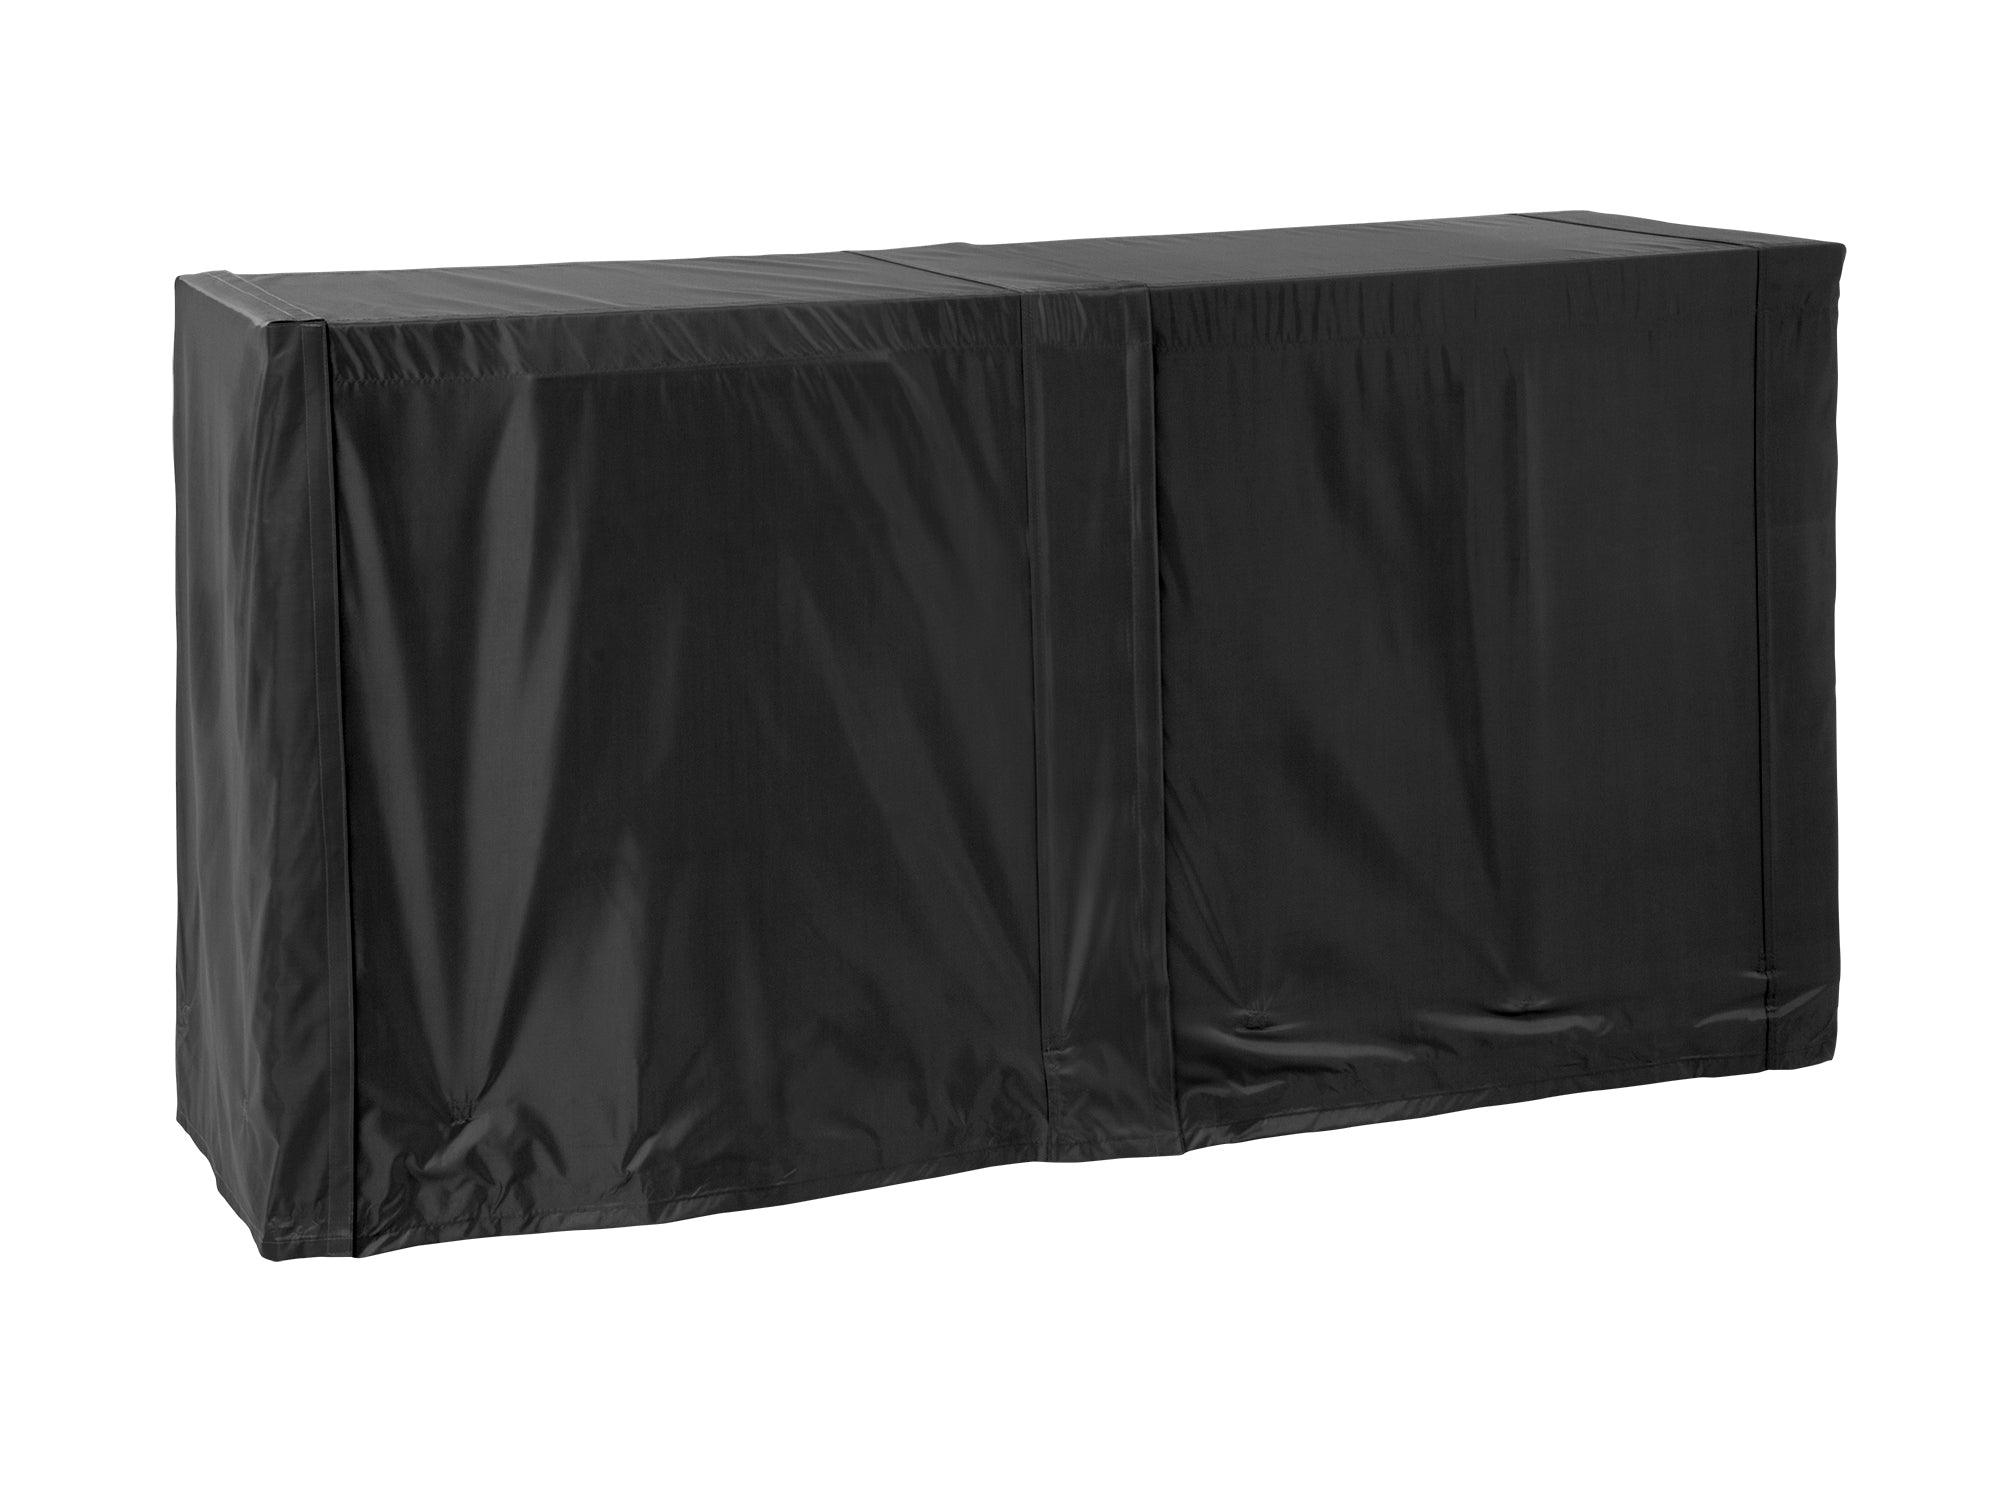 Outdoor Kitchen All-Season Cover Bundle: (3) 32 in. Cover, 56 in. Cover, (2) Right/Left Side Panel Covers